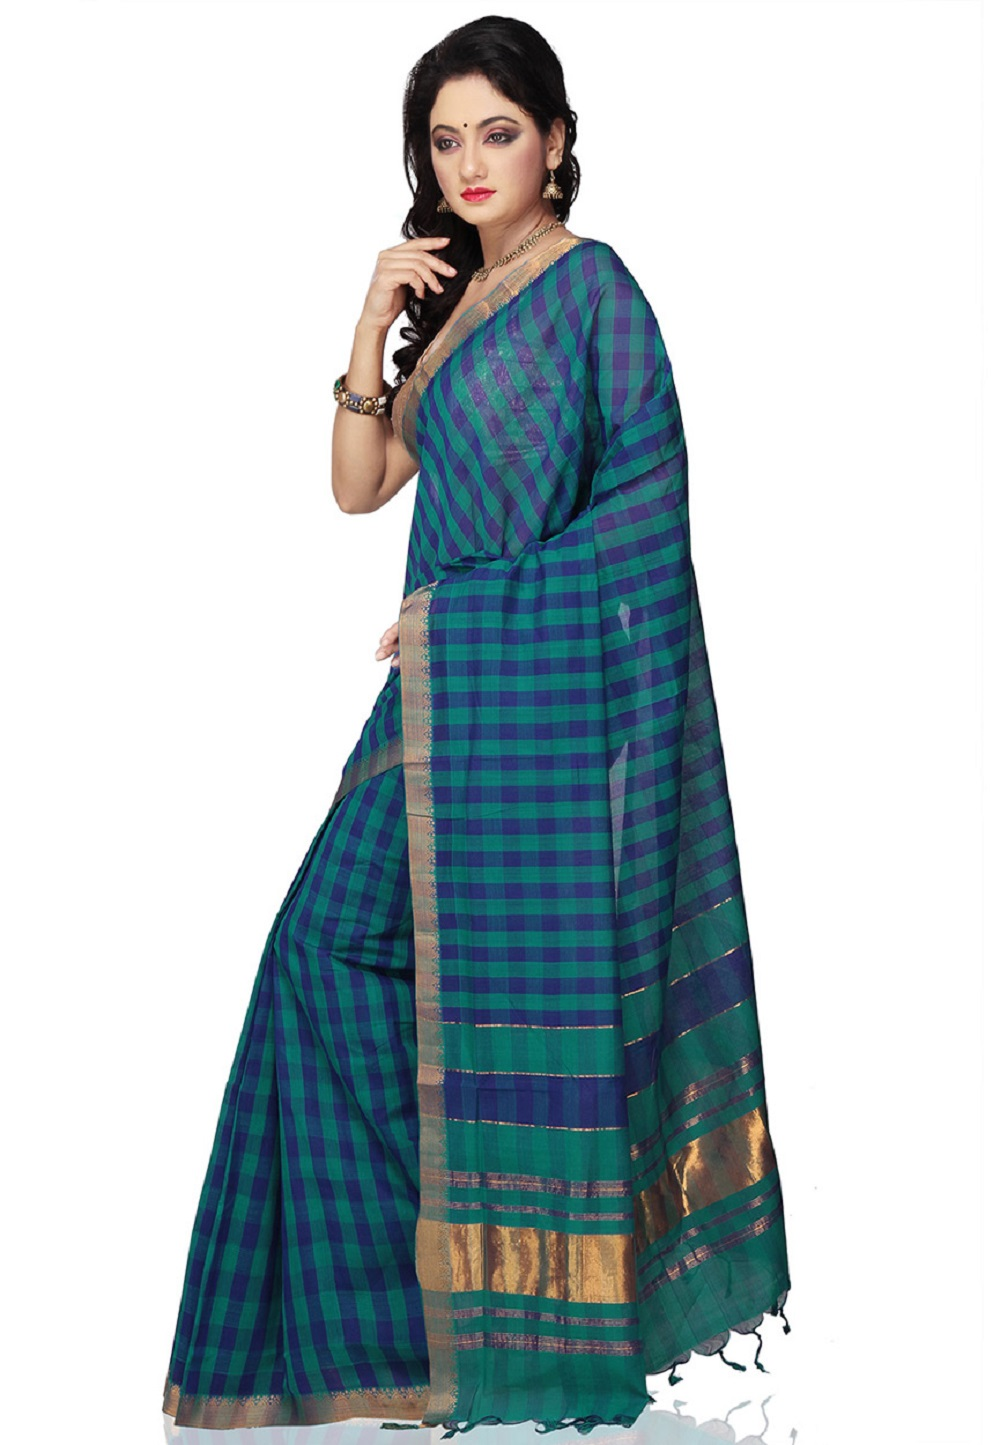 Teal Blue Color Mangalagiri Handloom Cotton Saree - side view (1)